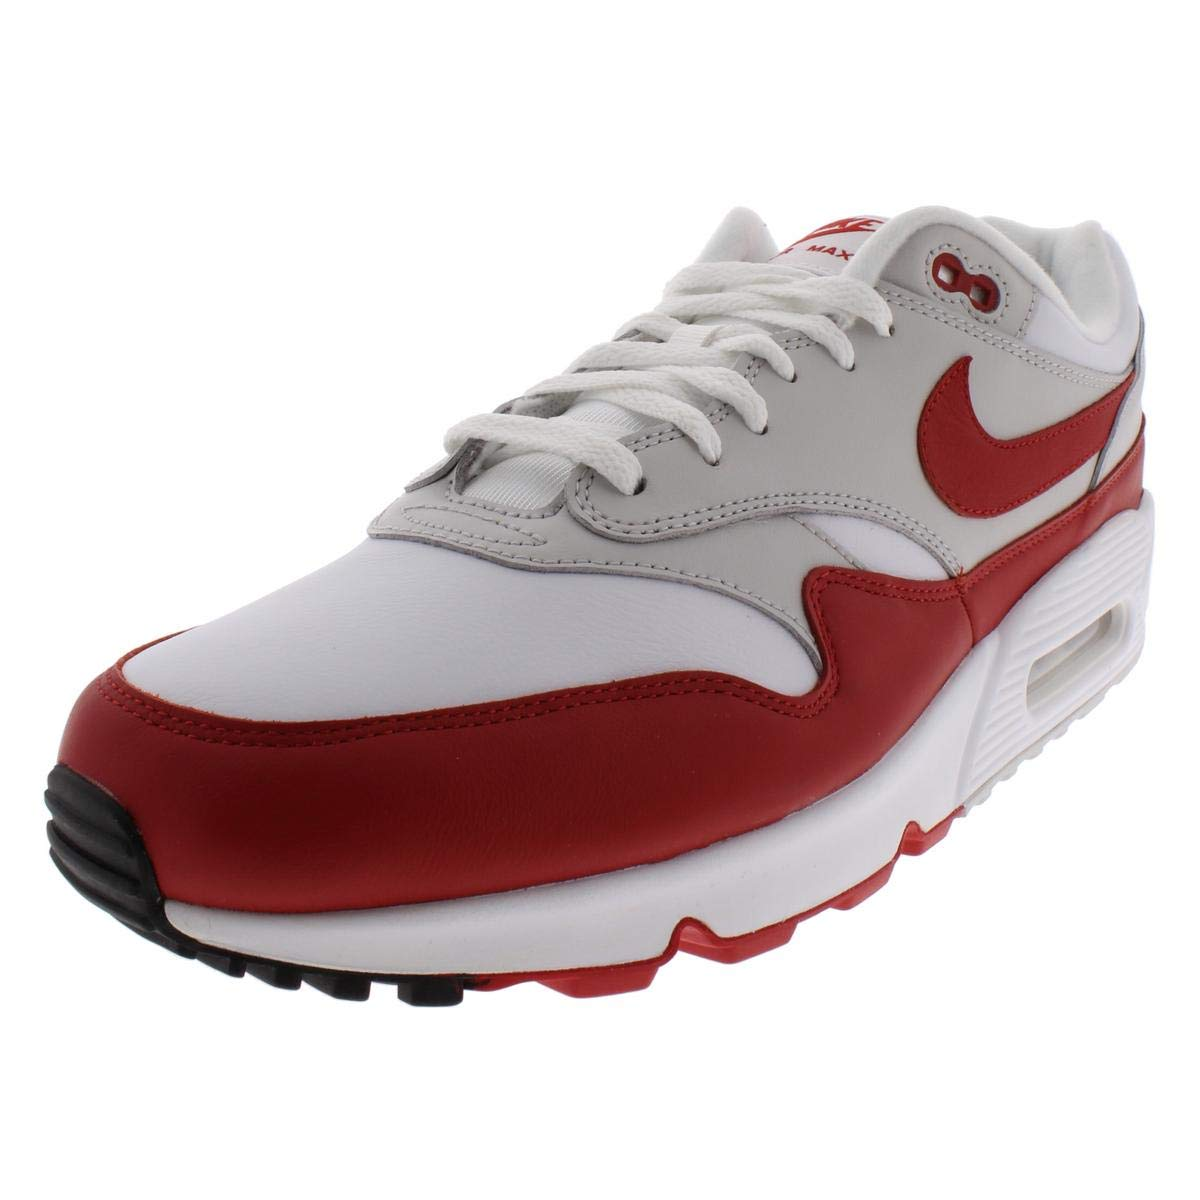 new images of ever popular sneakers Nike Air Max 90/1 White/University Red AJ7695 100 (6 D(M) US)